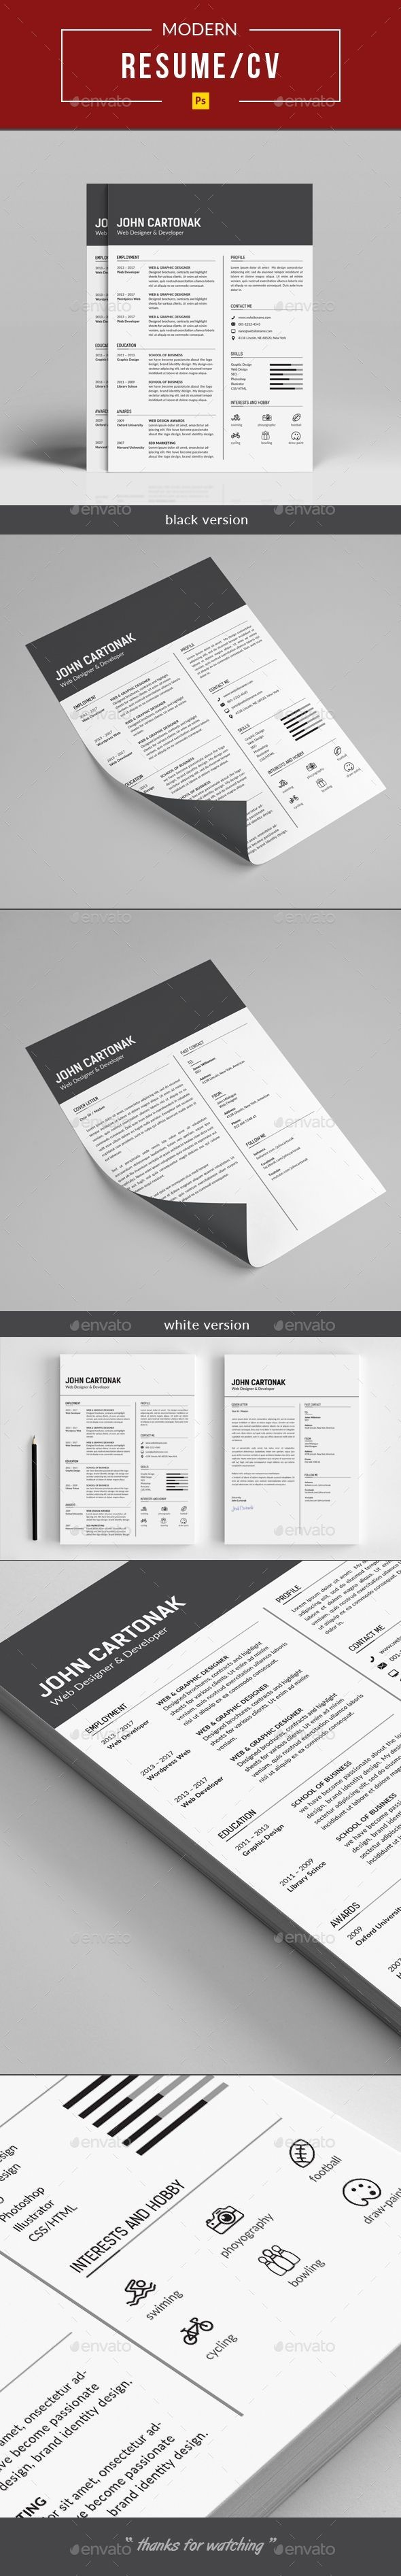 Infographic Resume Template - 24 Inspirational Infographic Resume Template